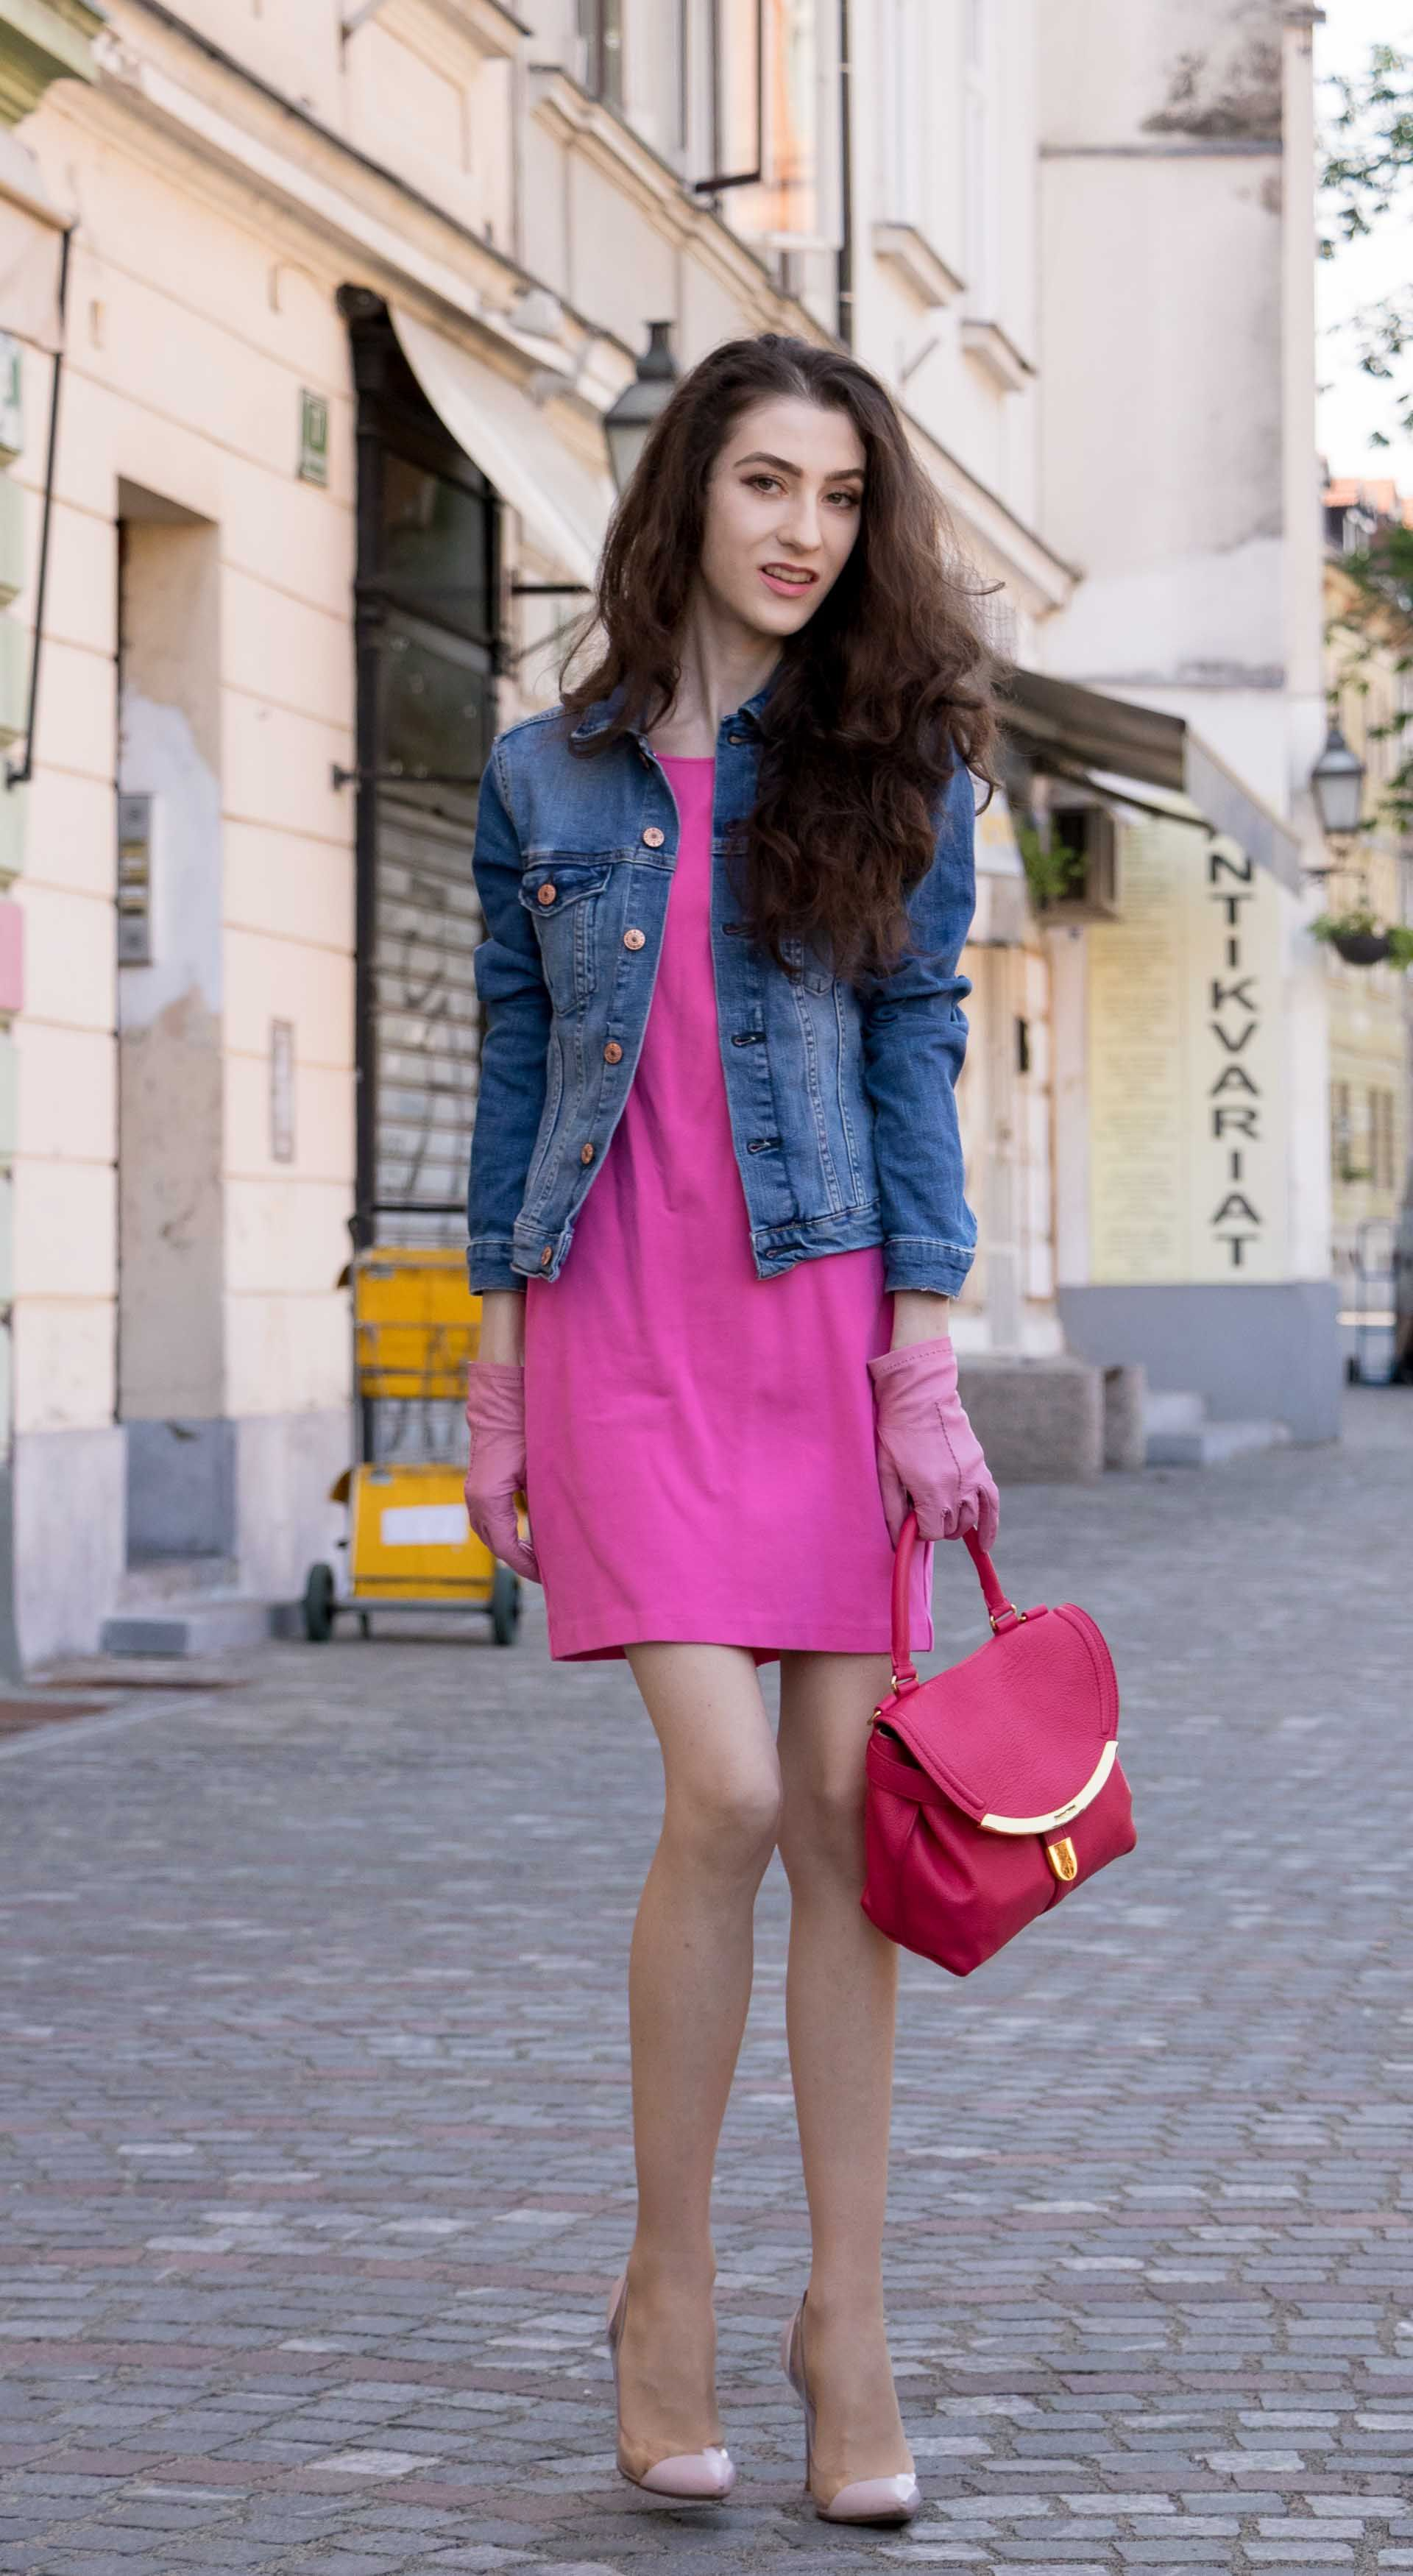 88f15bccce8e Fashion Blogger Veronika Lipar of Brunette from Wall Street sharing how to  wear denim jacket with cocktail dress for a casual look  fashion  blogpost   chic ...